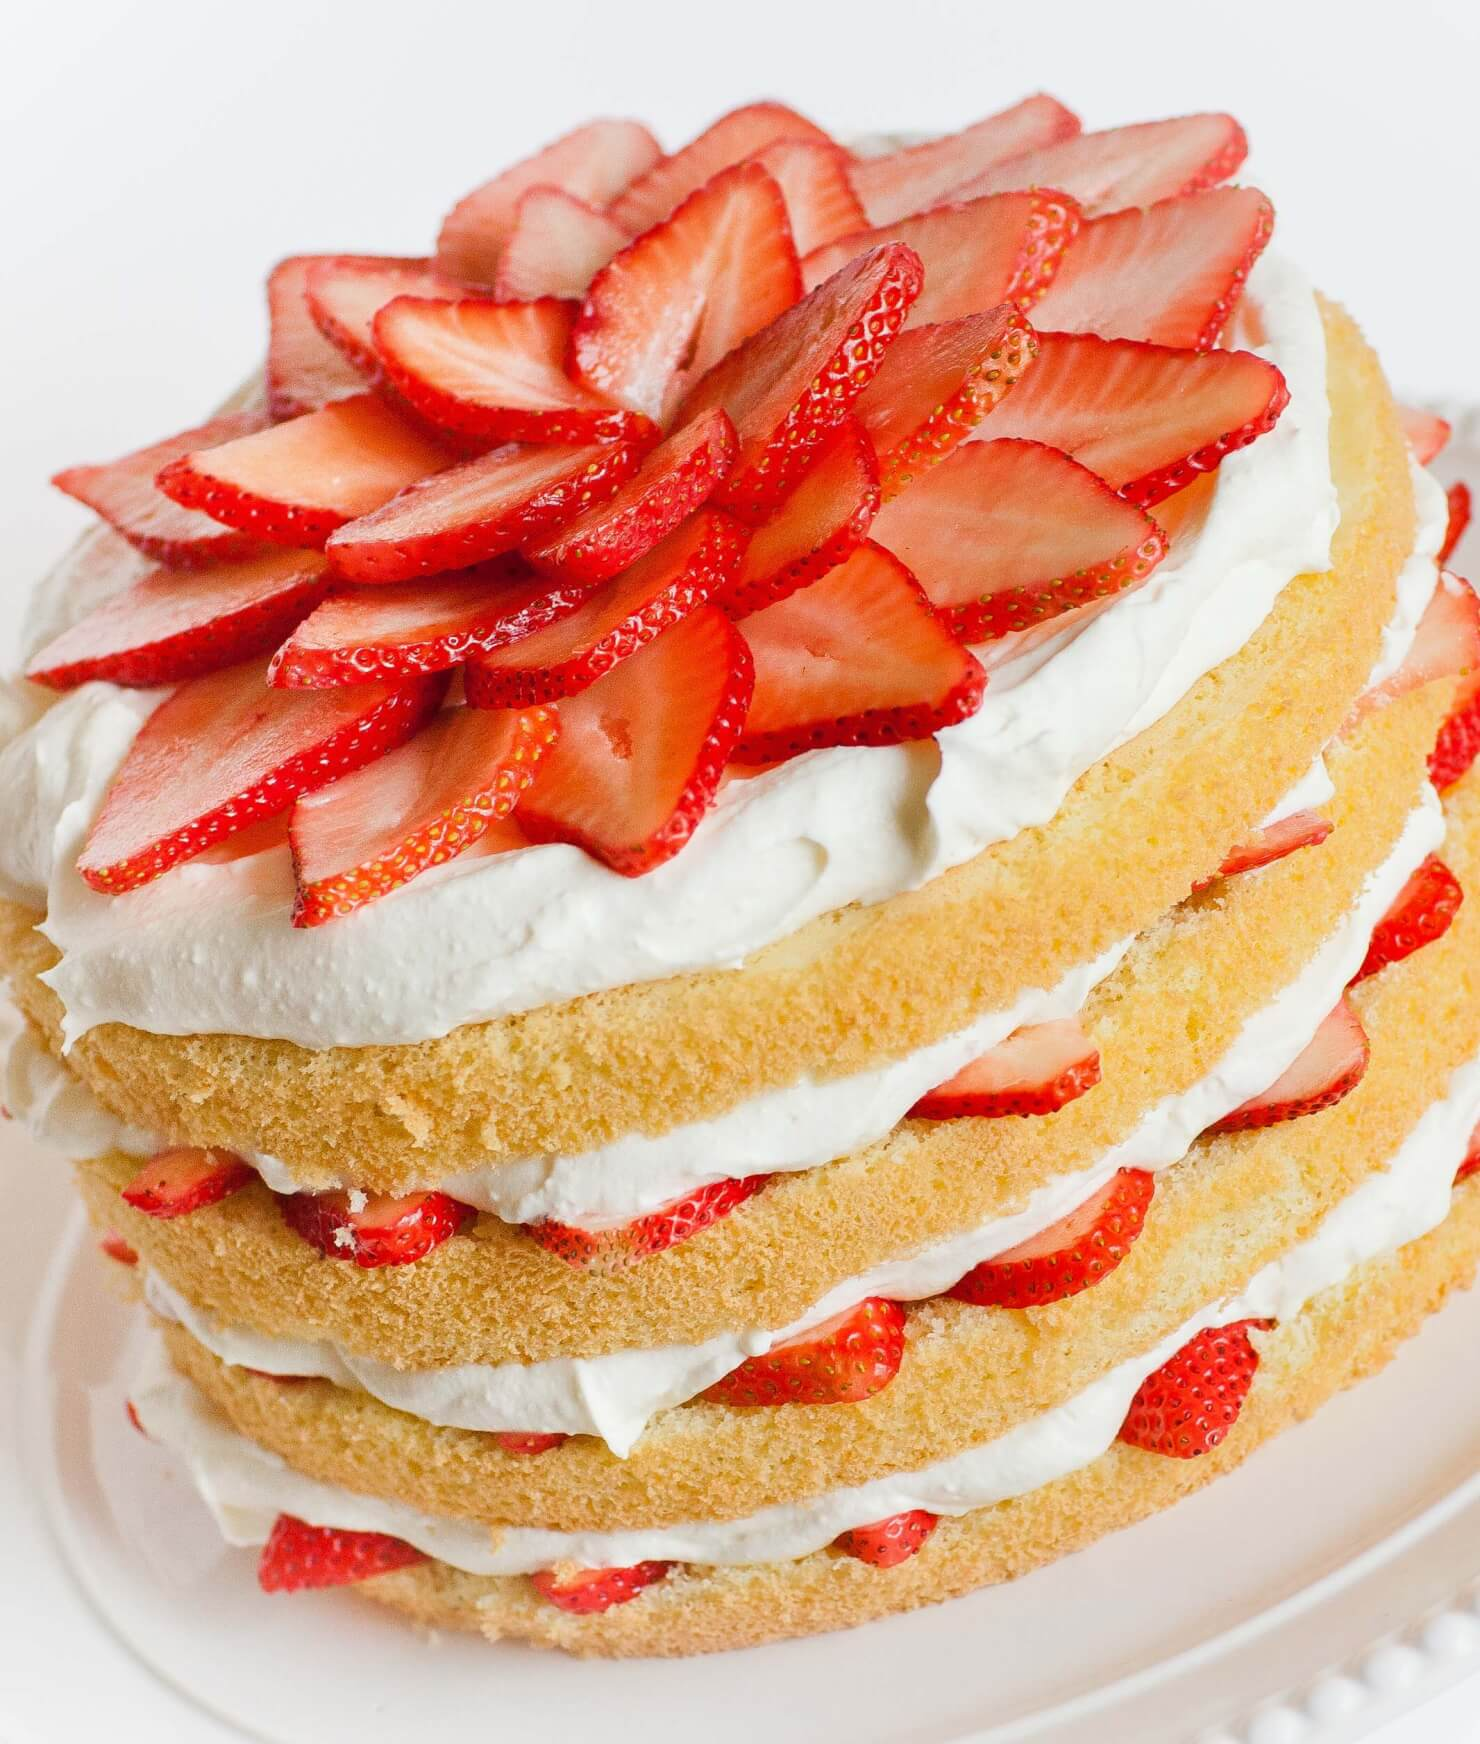 Strawberries Cream Cake Video Tatyanas Everyday Food